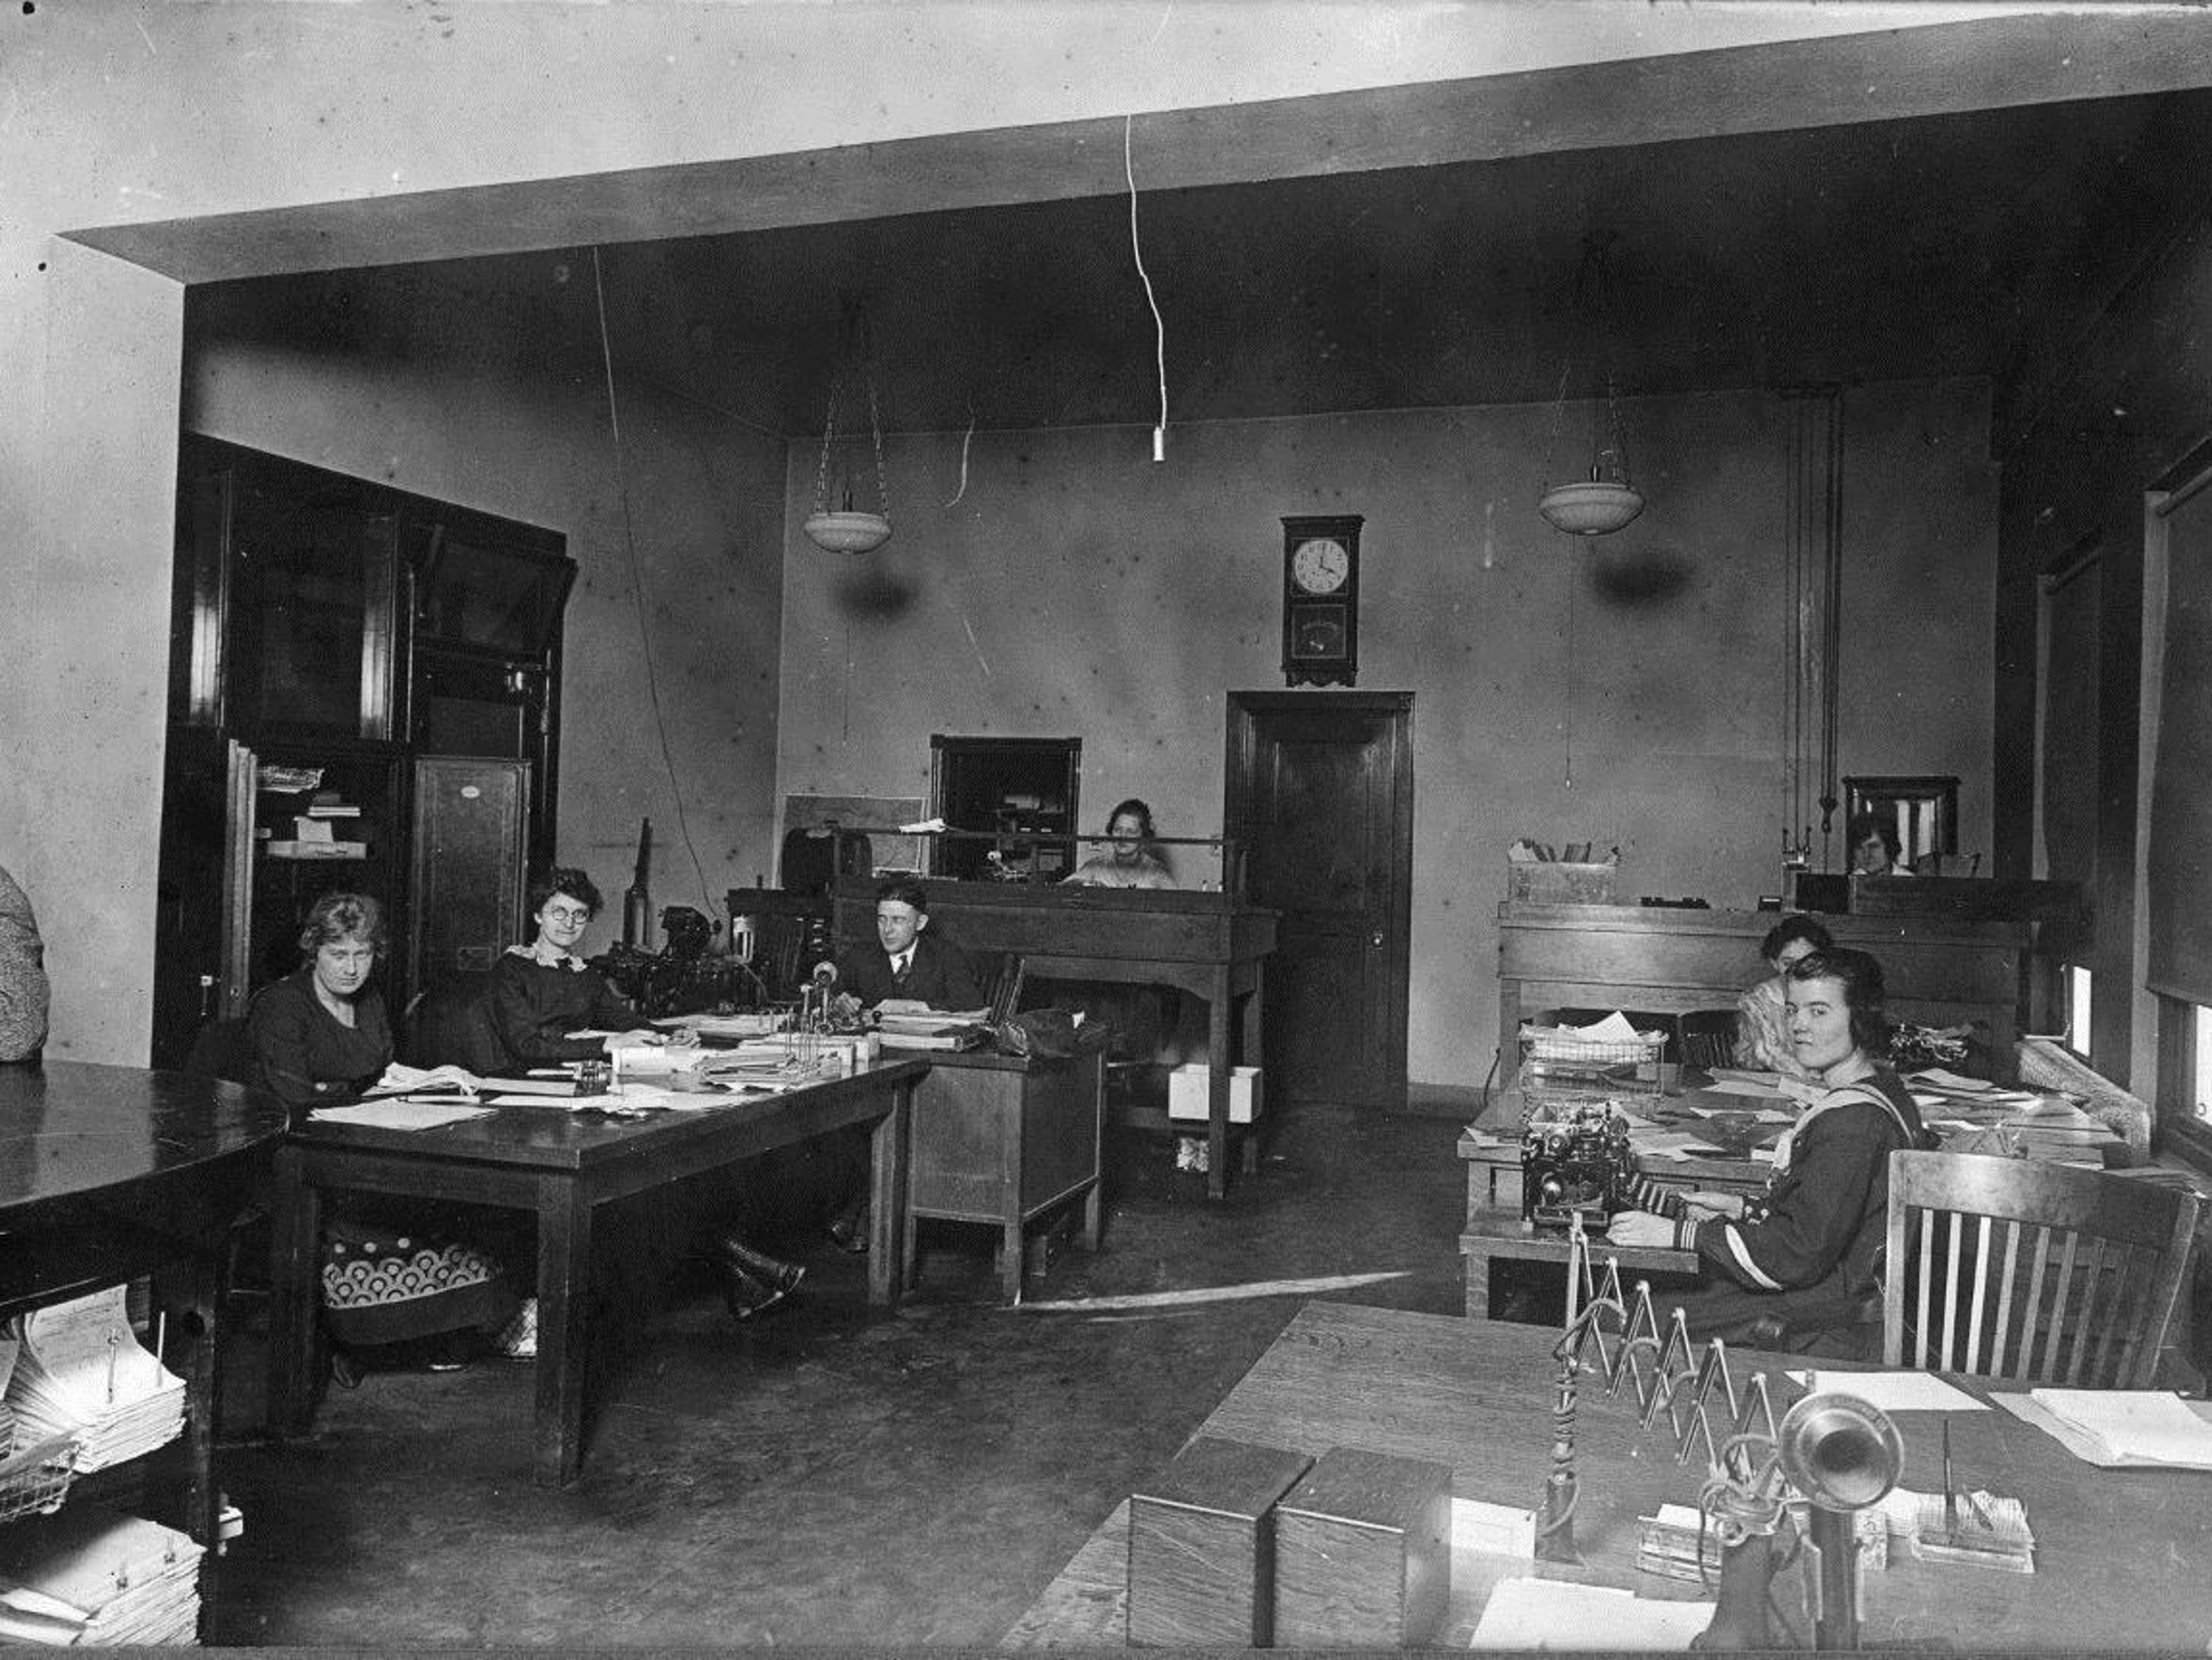 Staff work inside the offices at Meadow Gold in Great